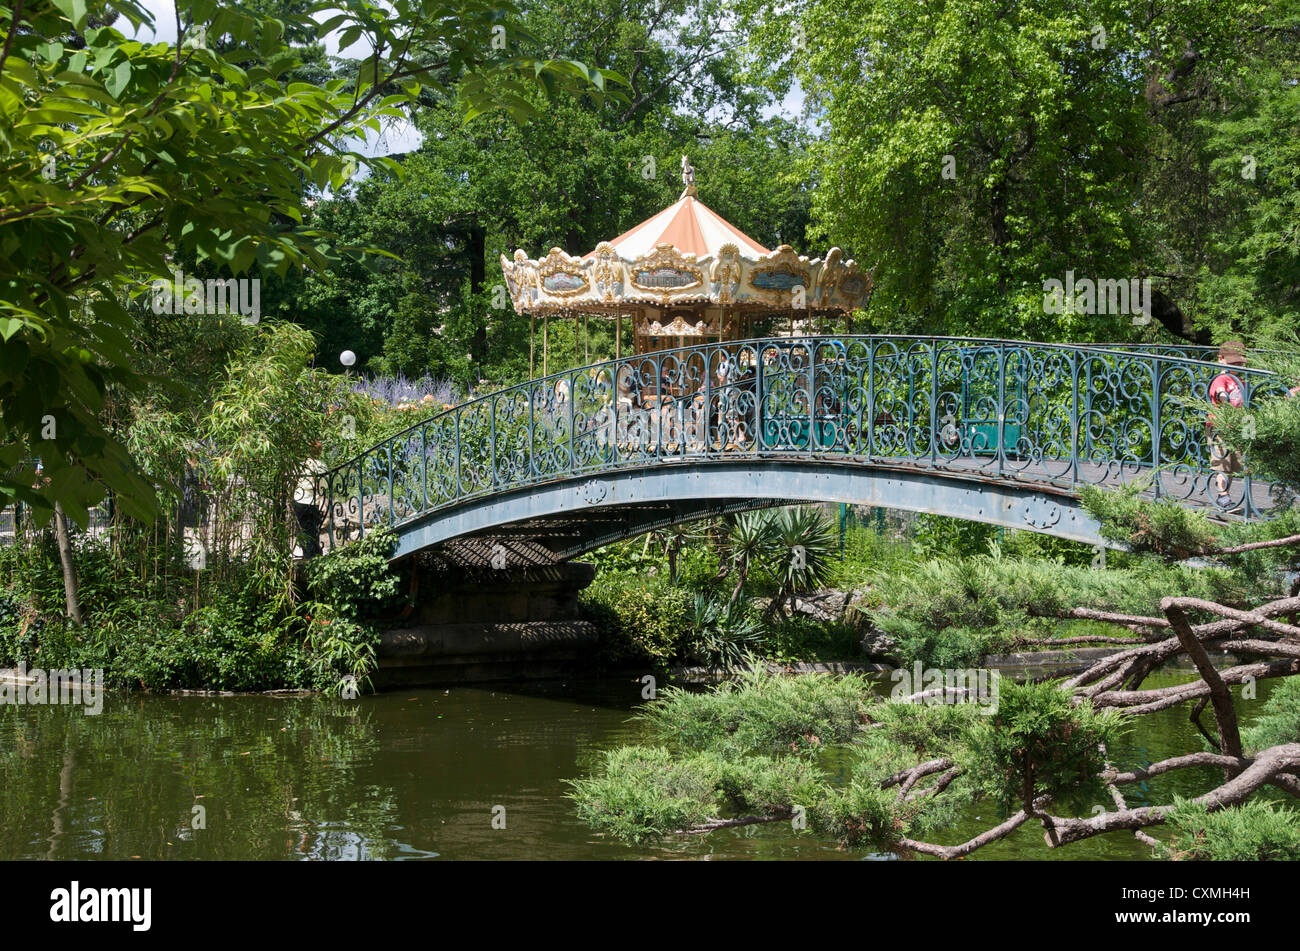 Jardin public bordeaux gironde france with carousel ride in the stock photo 50854289 alamy - Rue du jardin public bordeaux ...